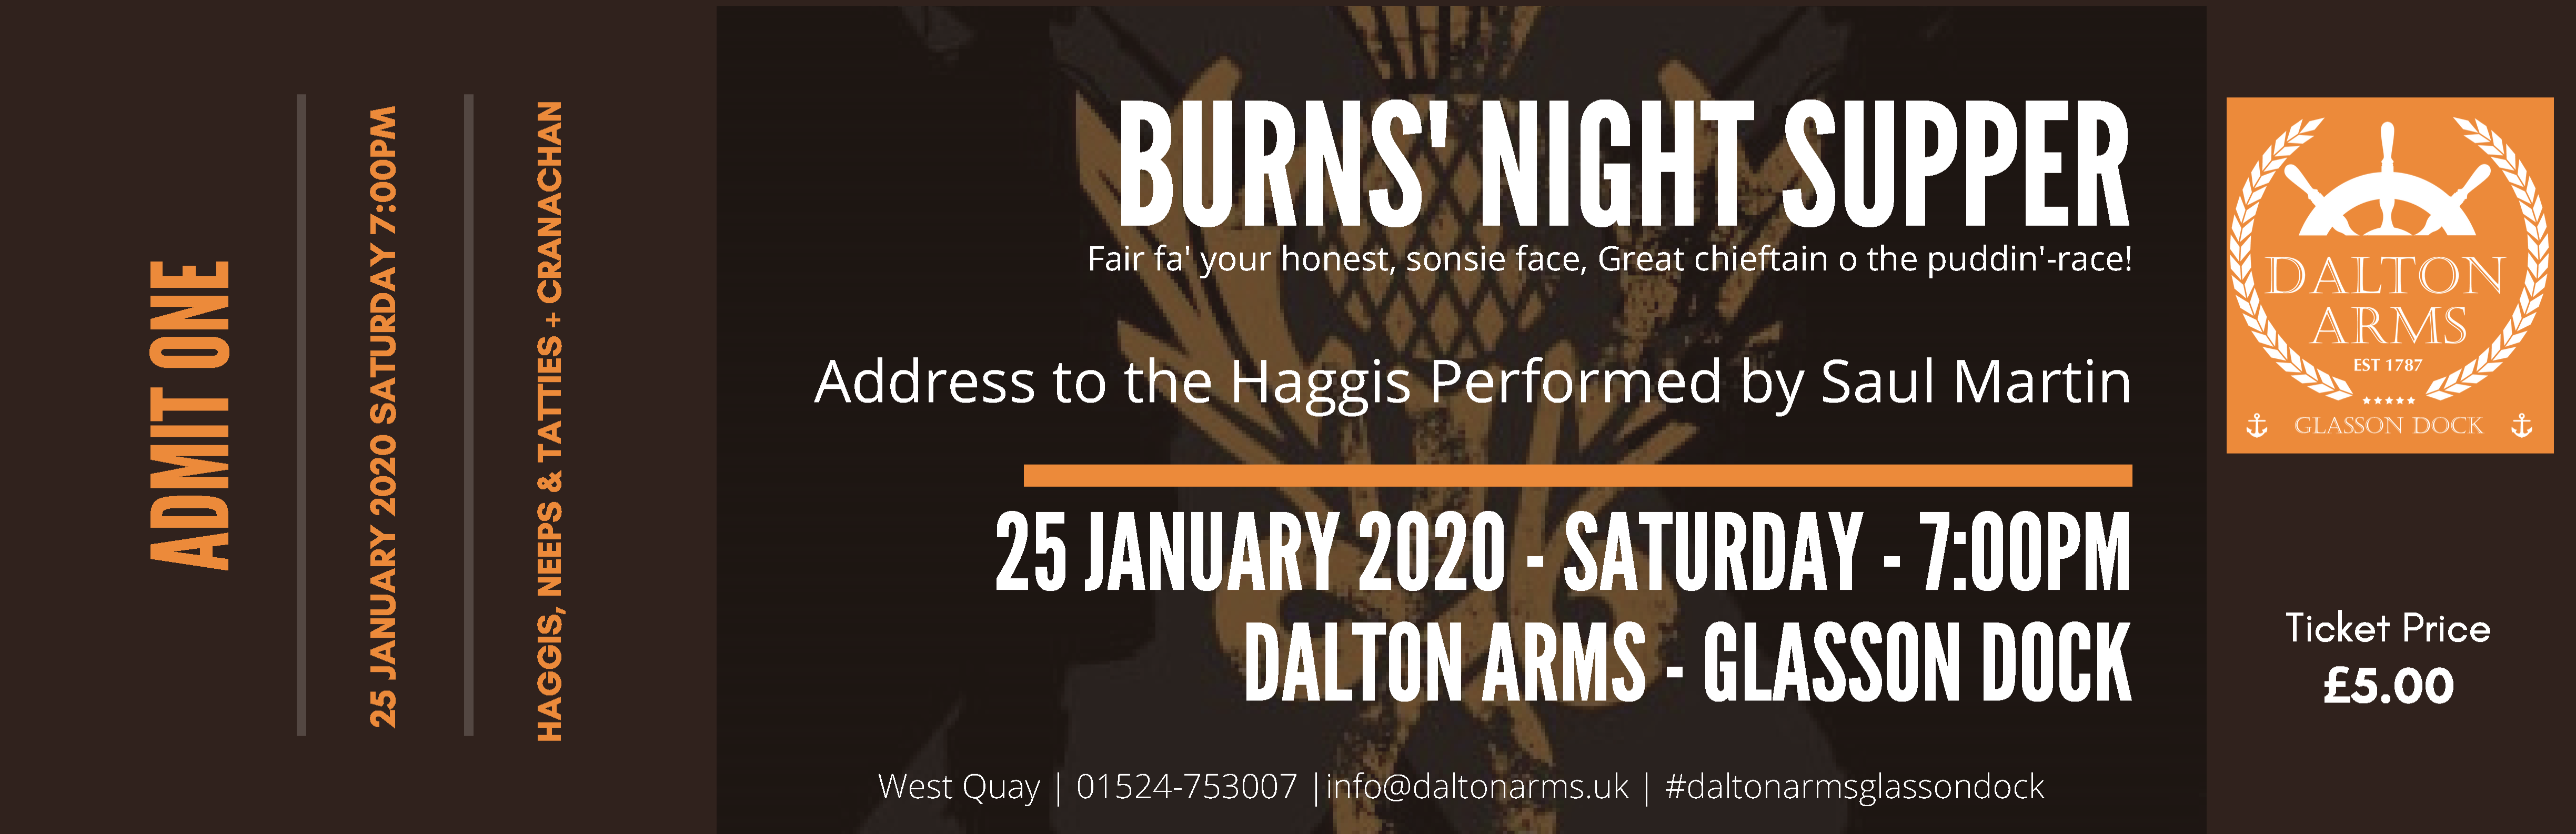 Burns' Supper Tickets now available, spread the word…